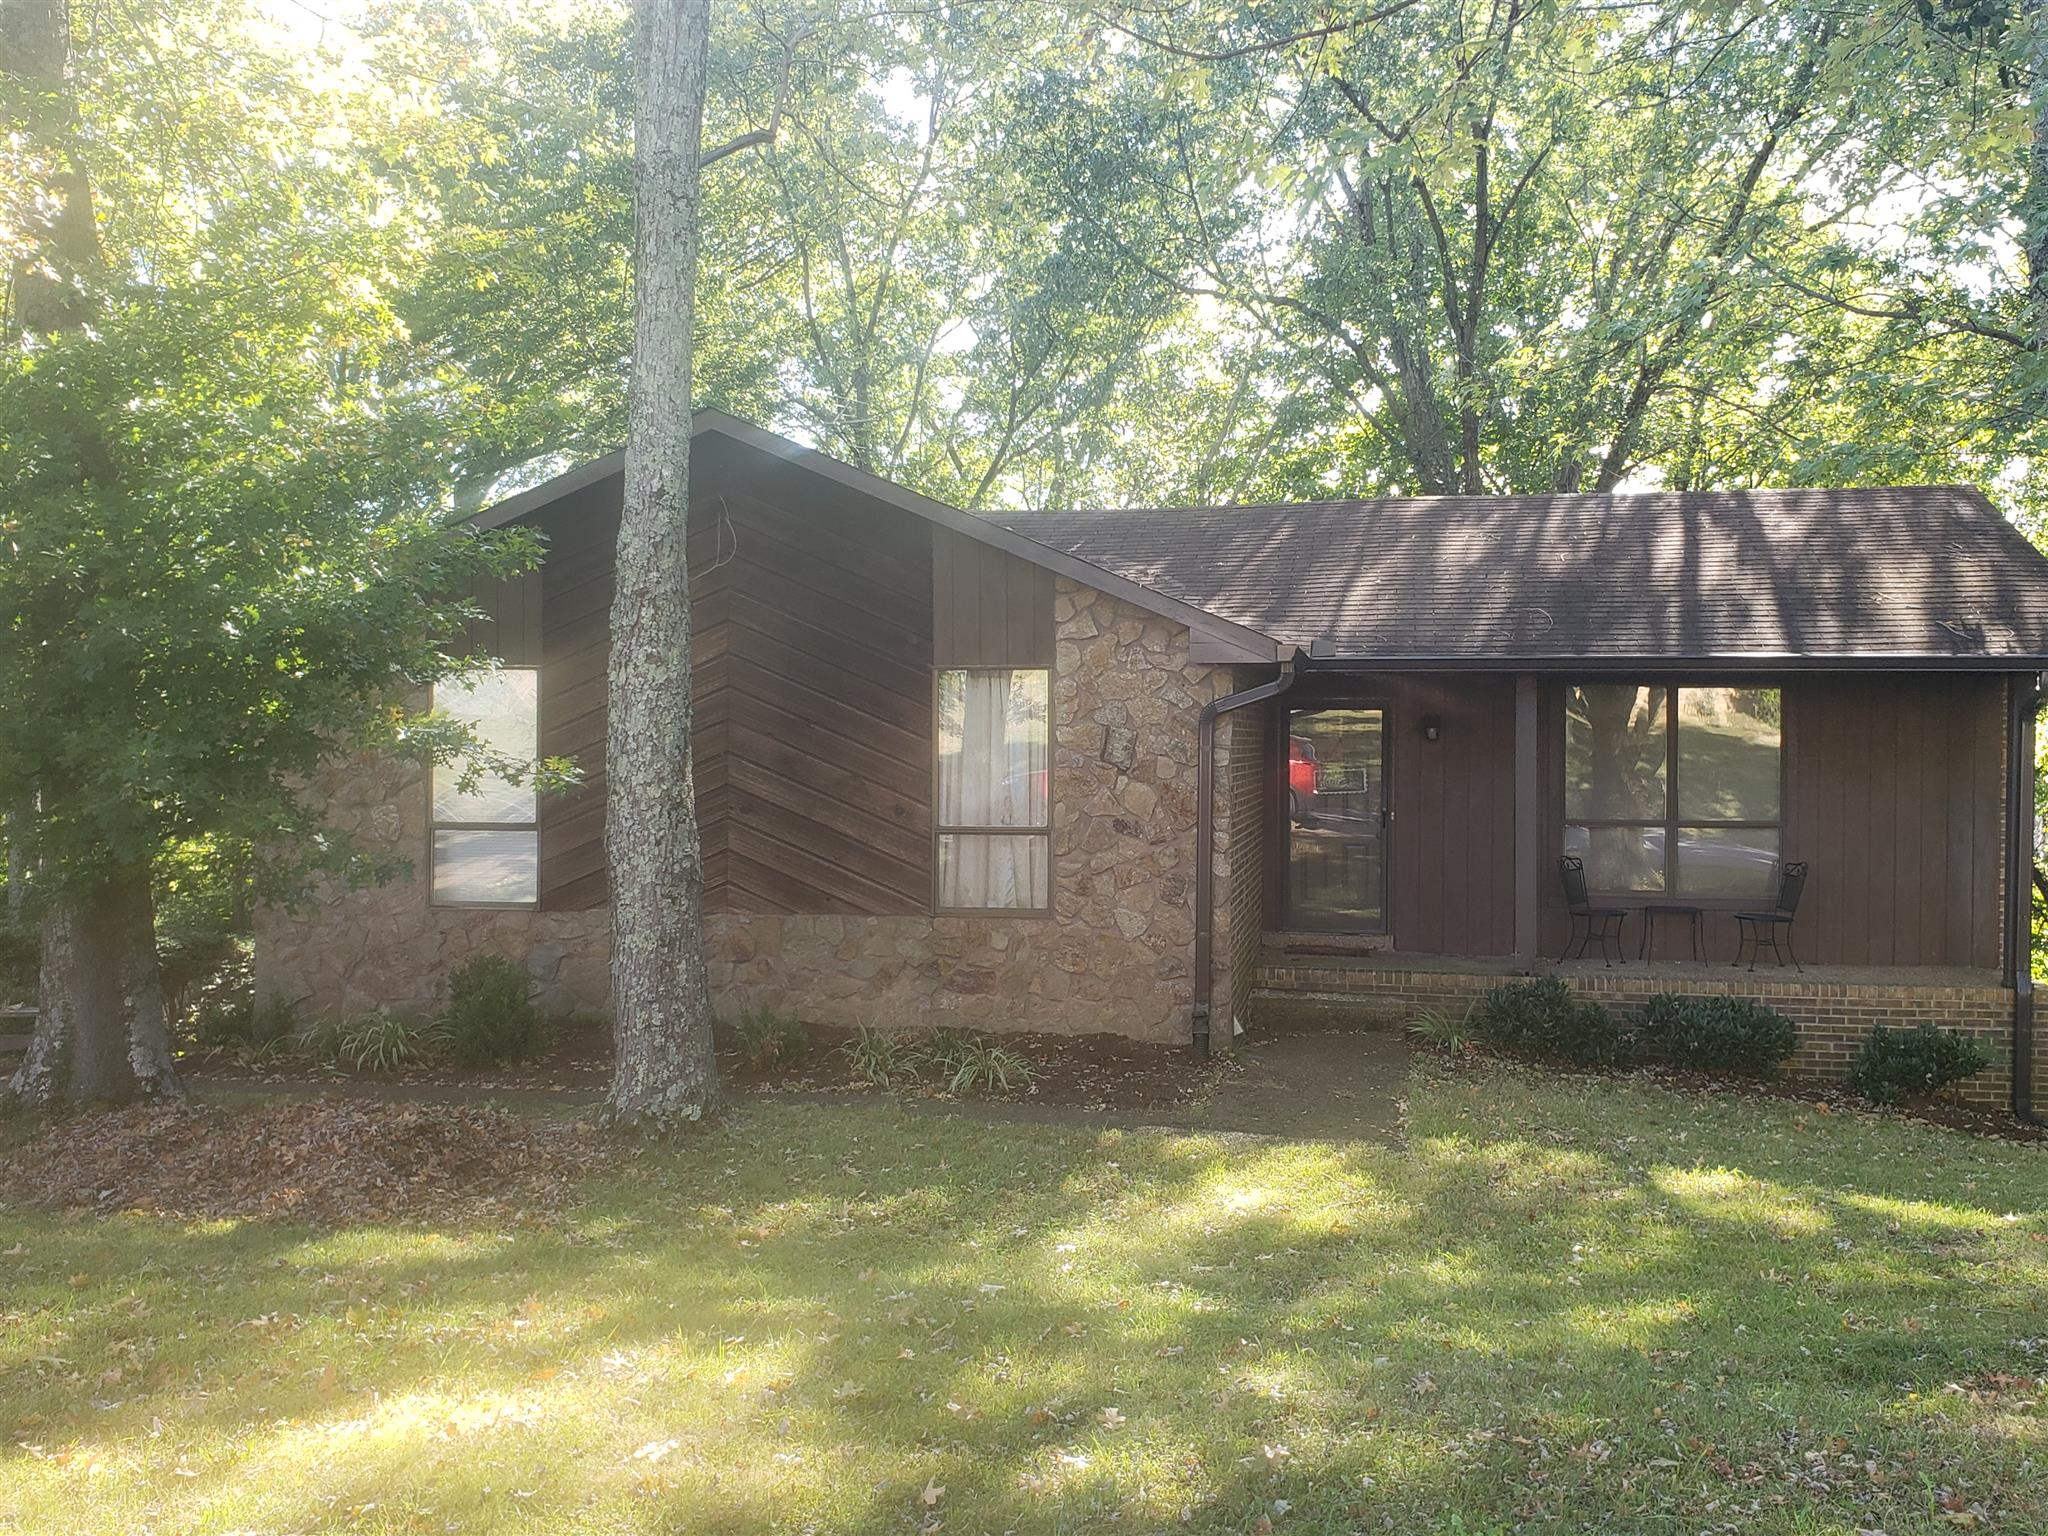 213 Cedarview Dr, Nashville-Antioch in Davidson County County, TN 37013 Home for Sale